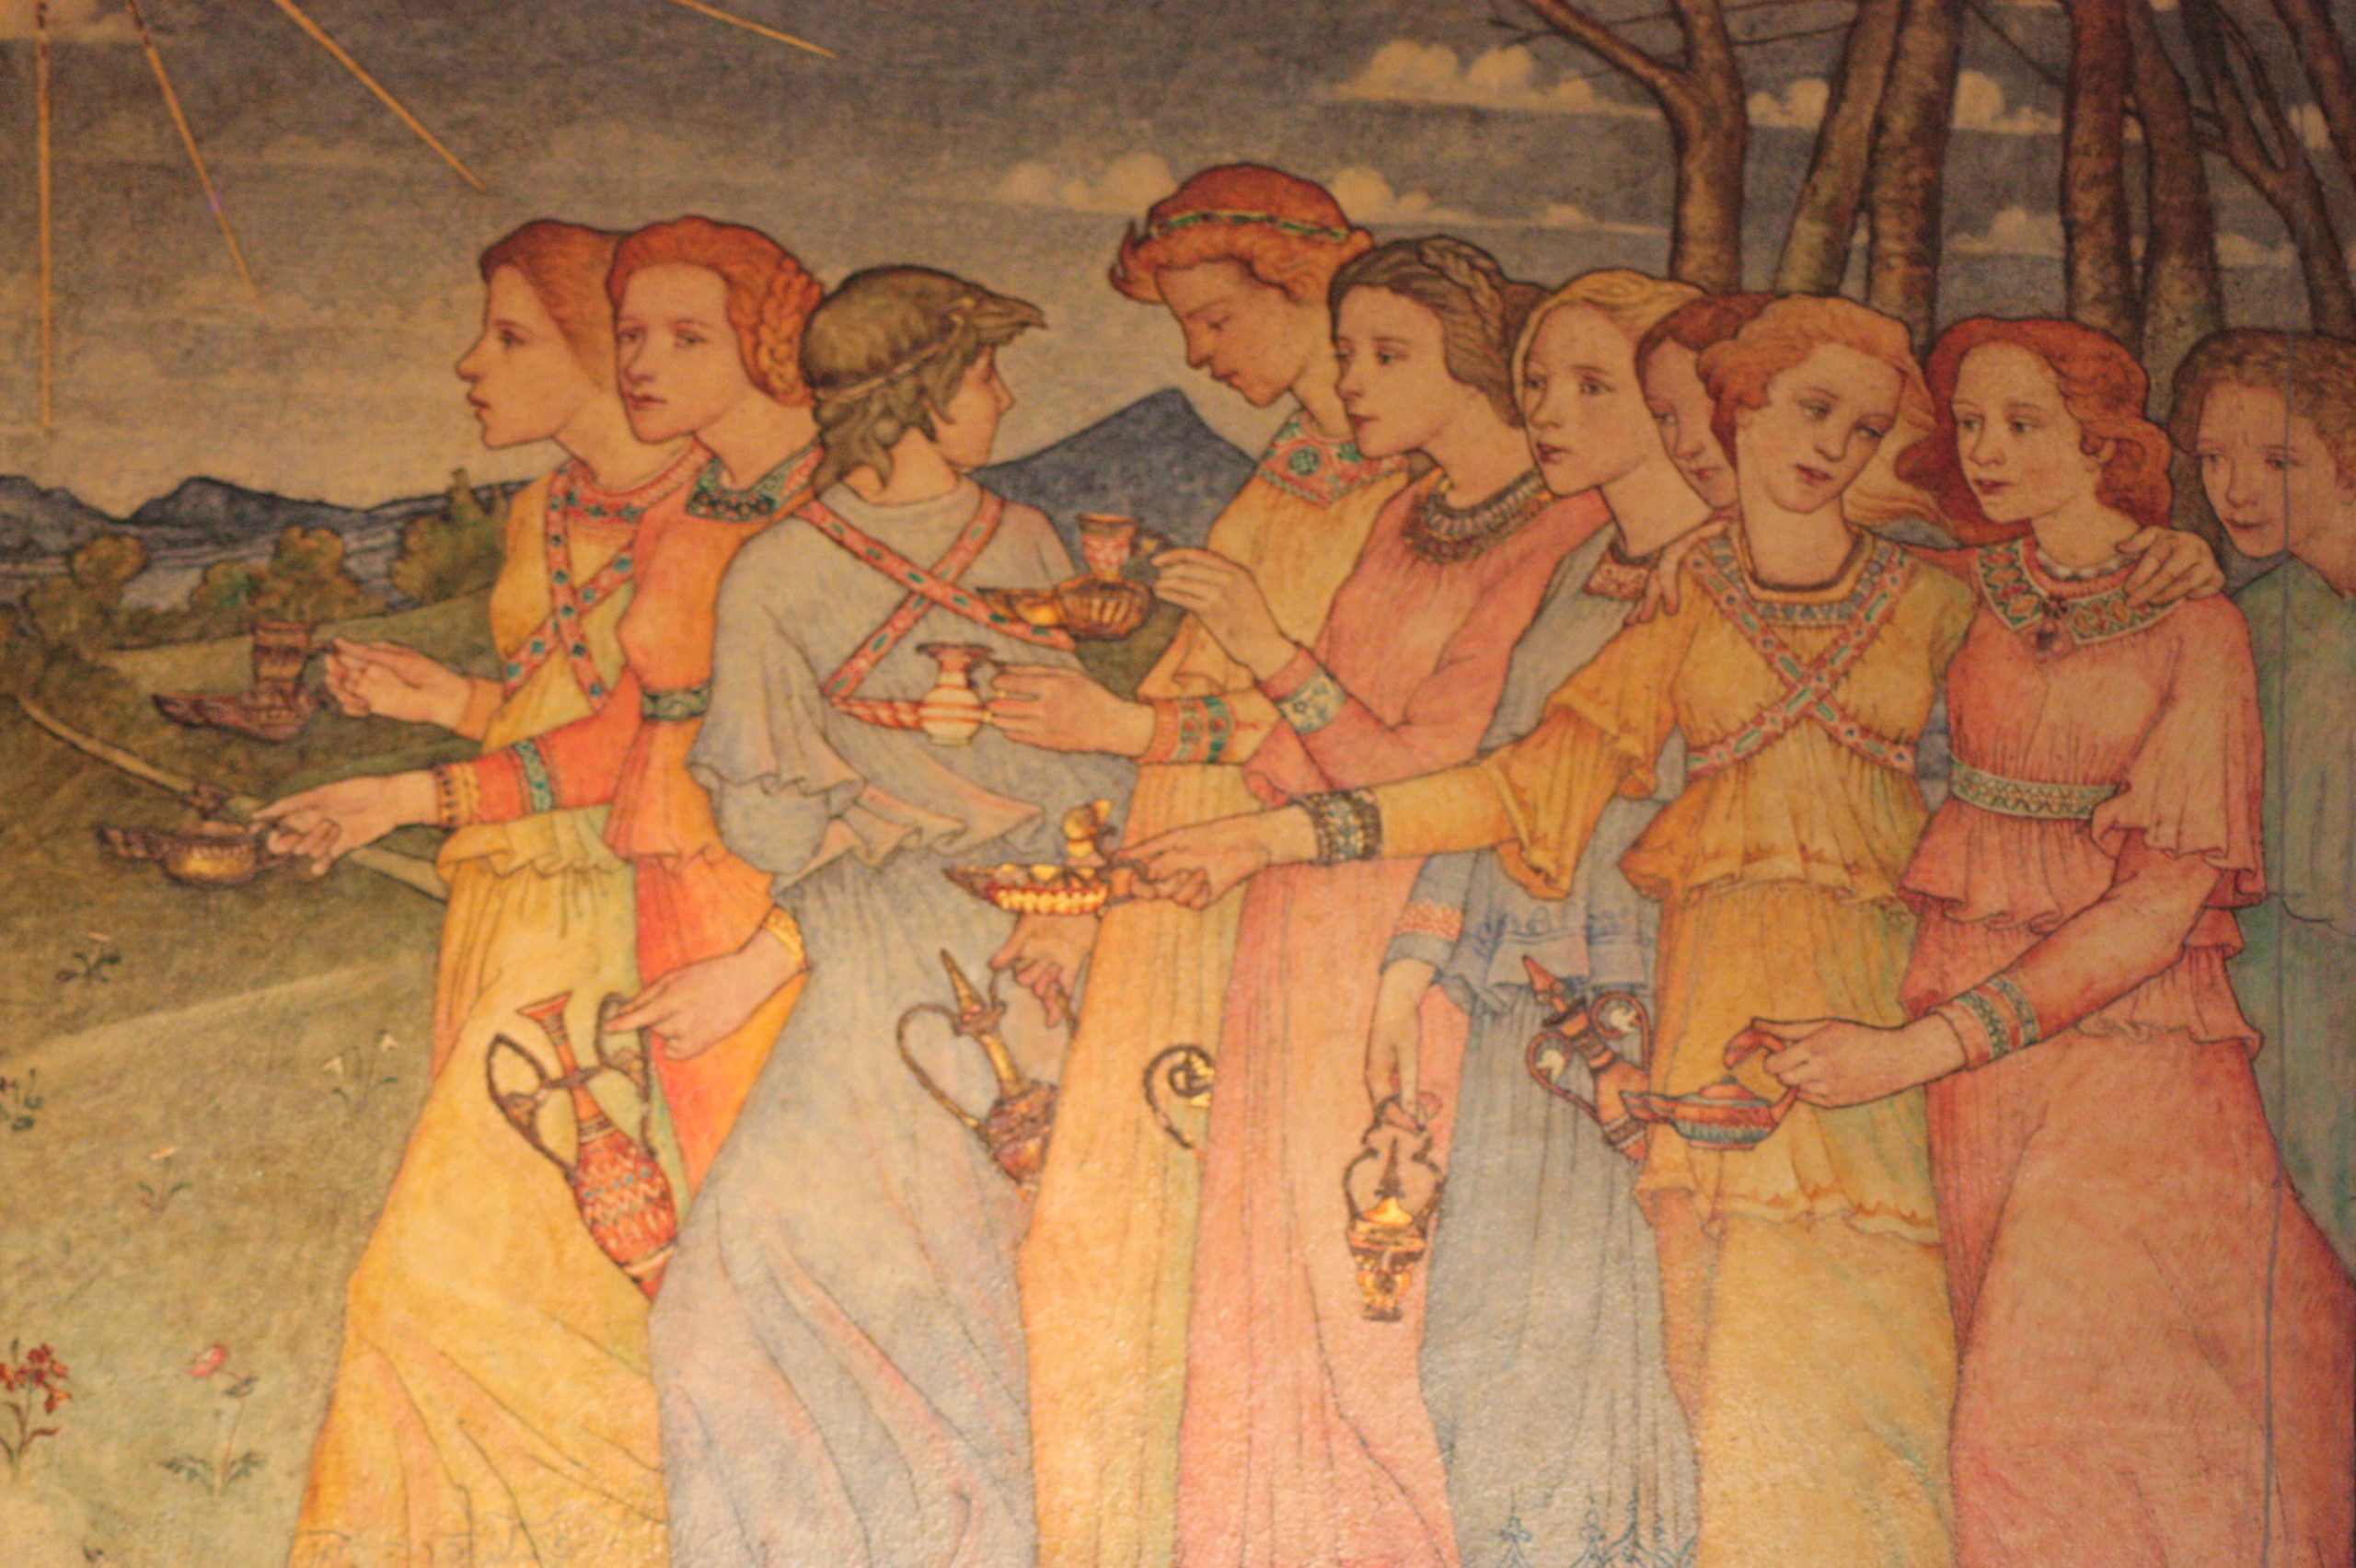 Phoebe Anna Traquair's painting The Parable of the Ten Virgins